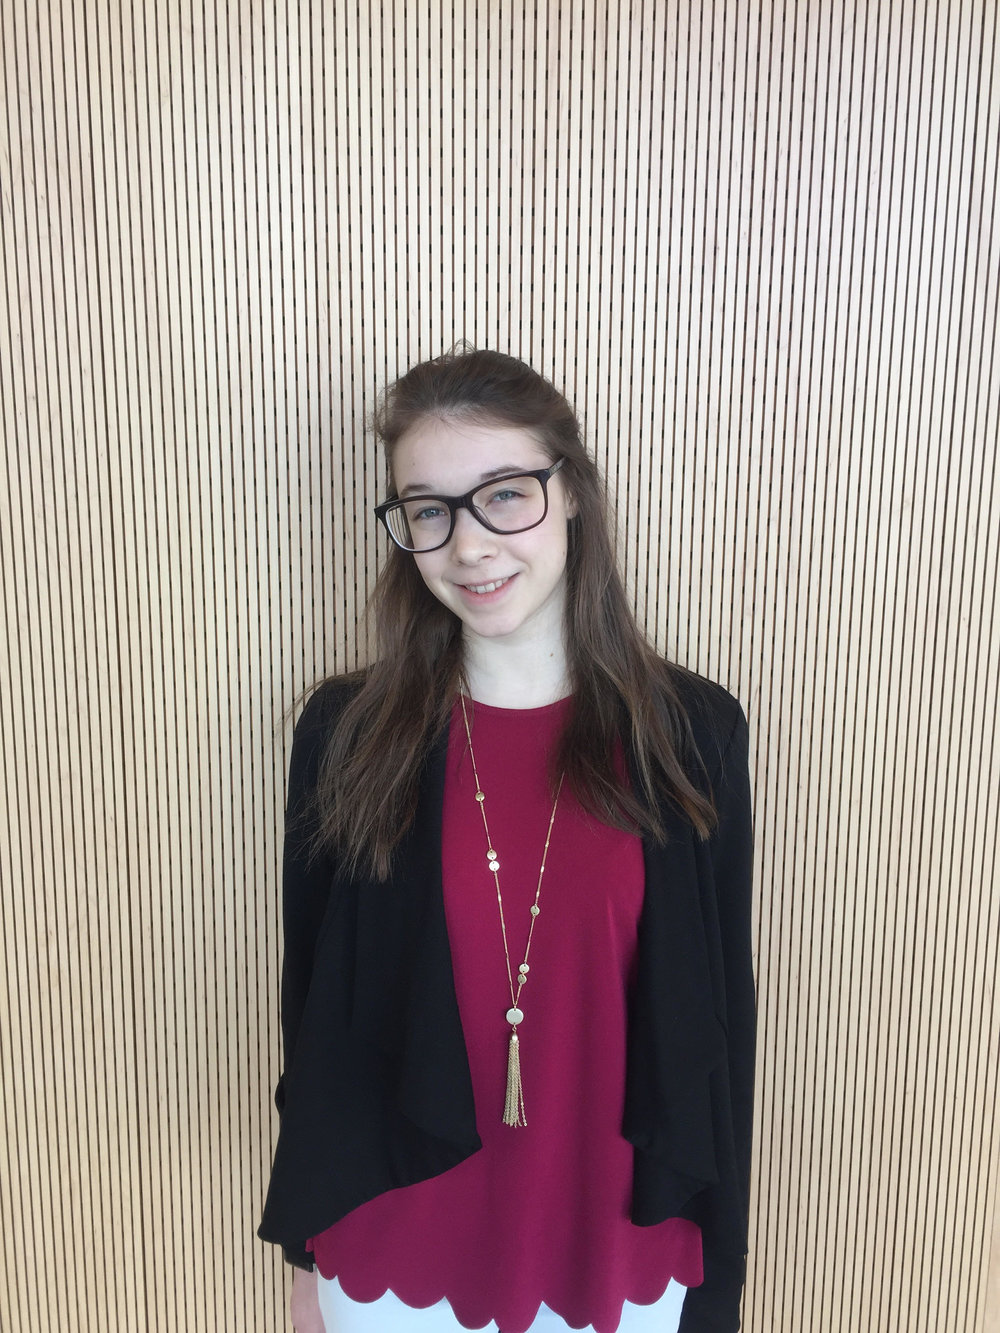 Kayla is a freshman at the University of Pittsburgh studying finance and actuarial math. At Pitt, Kayla is involved with the Pitt Ballet Club, Pitt Dance Ensemble, and Ice Cream Sundays, a club that brings ice cream to kids in nearby children's hospitals. Outside of Pitt, Kayla enjoys painting, drawing, and baking. During her time at GTE, Kayla aims to learn financial modeling skills and grow her professional network.